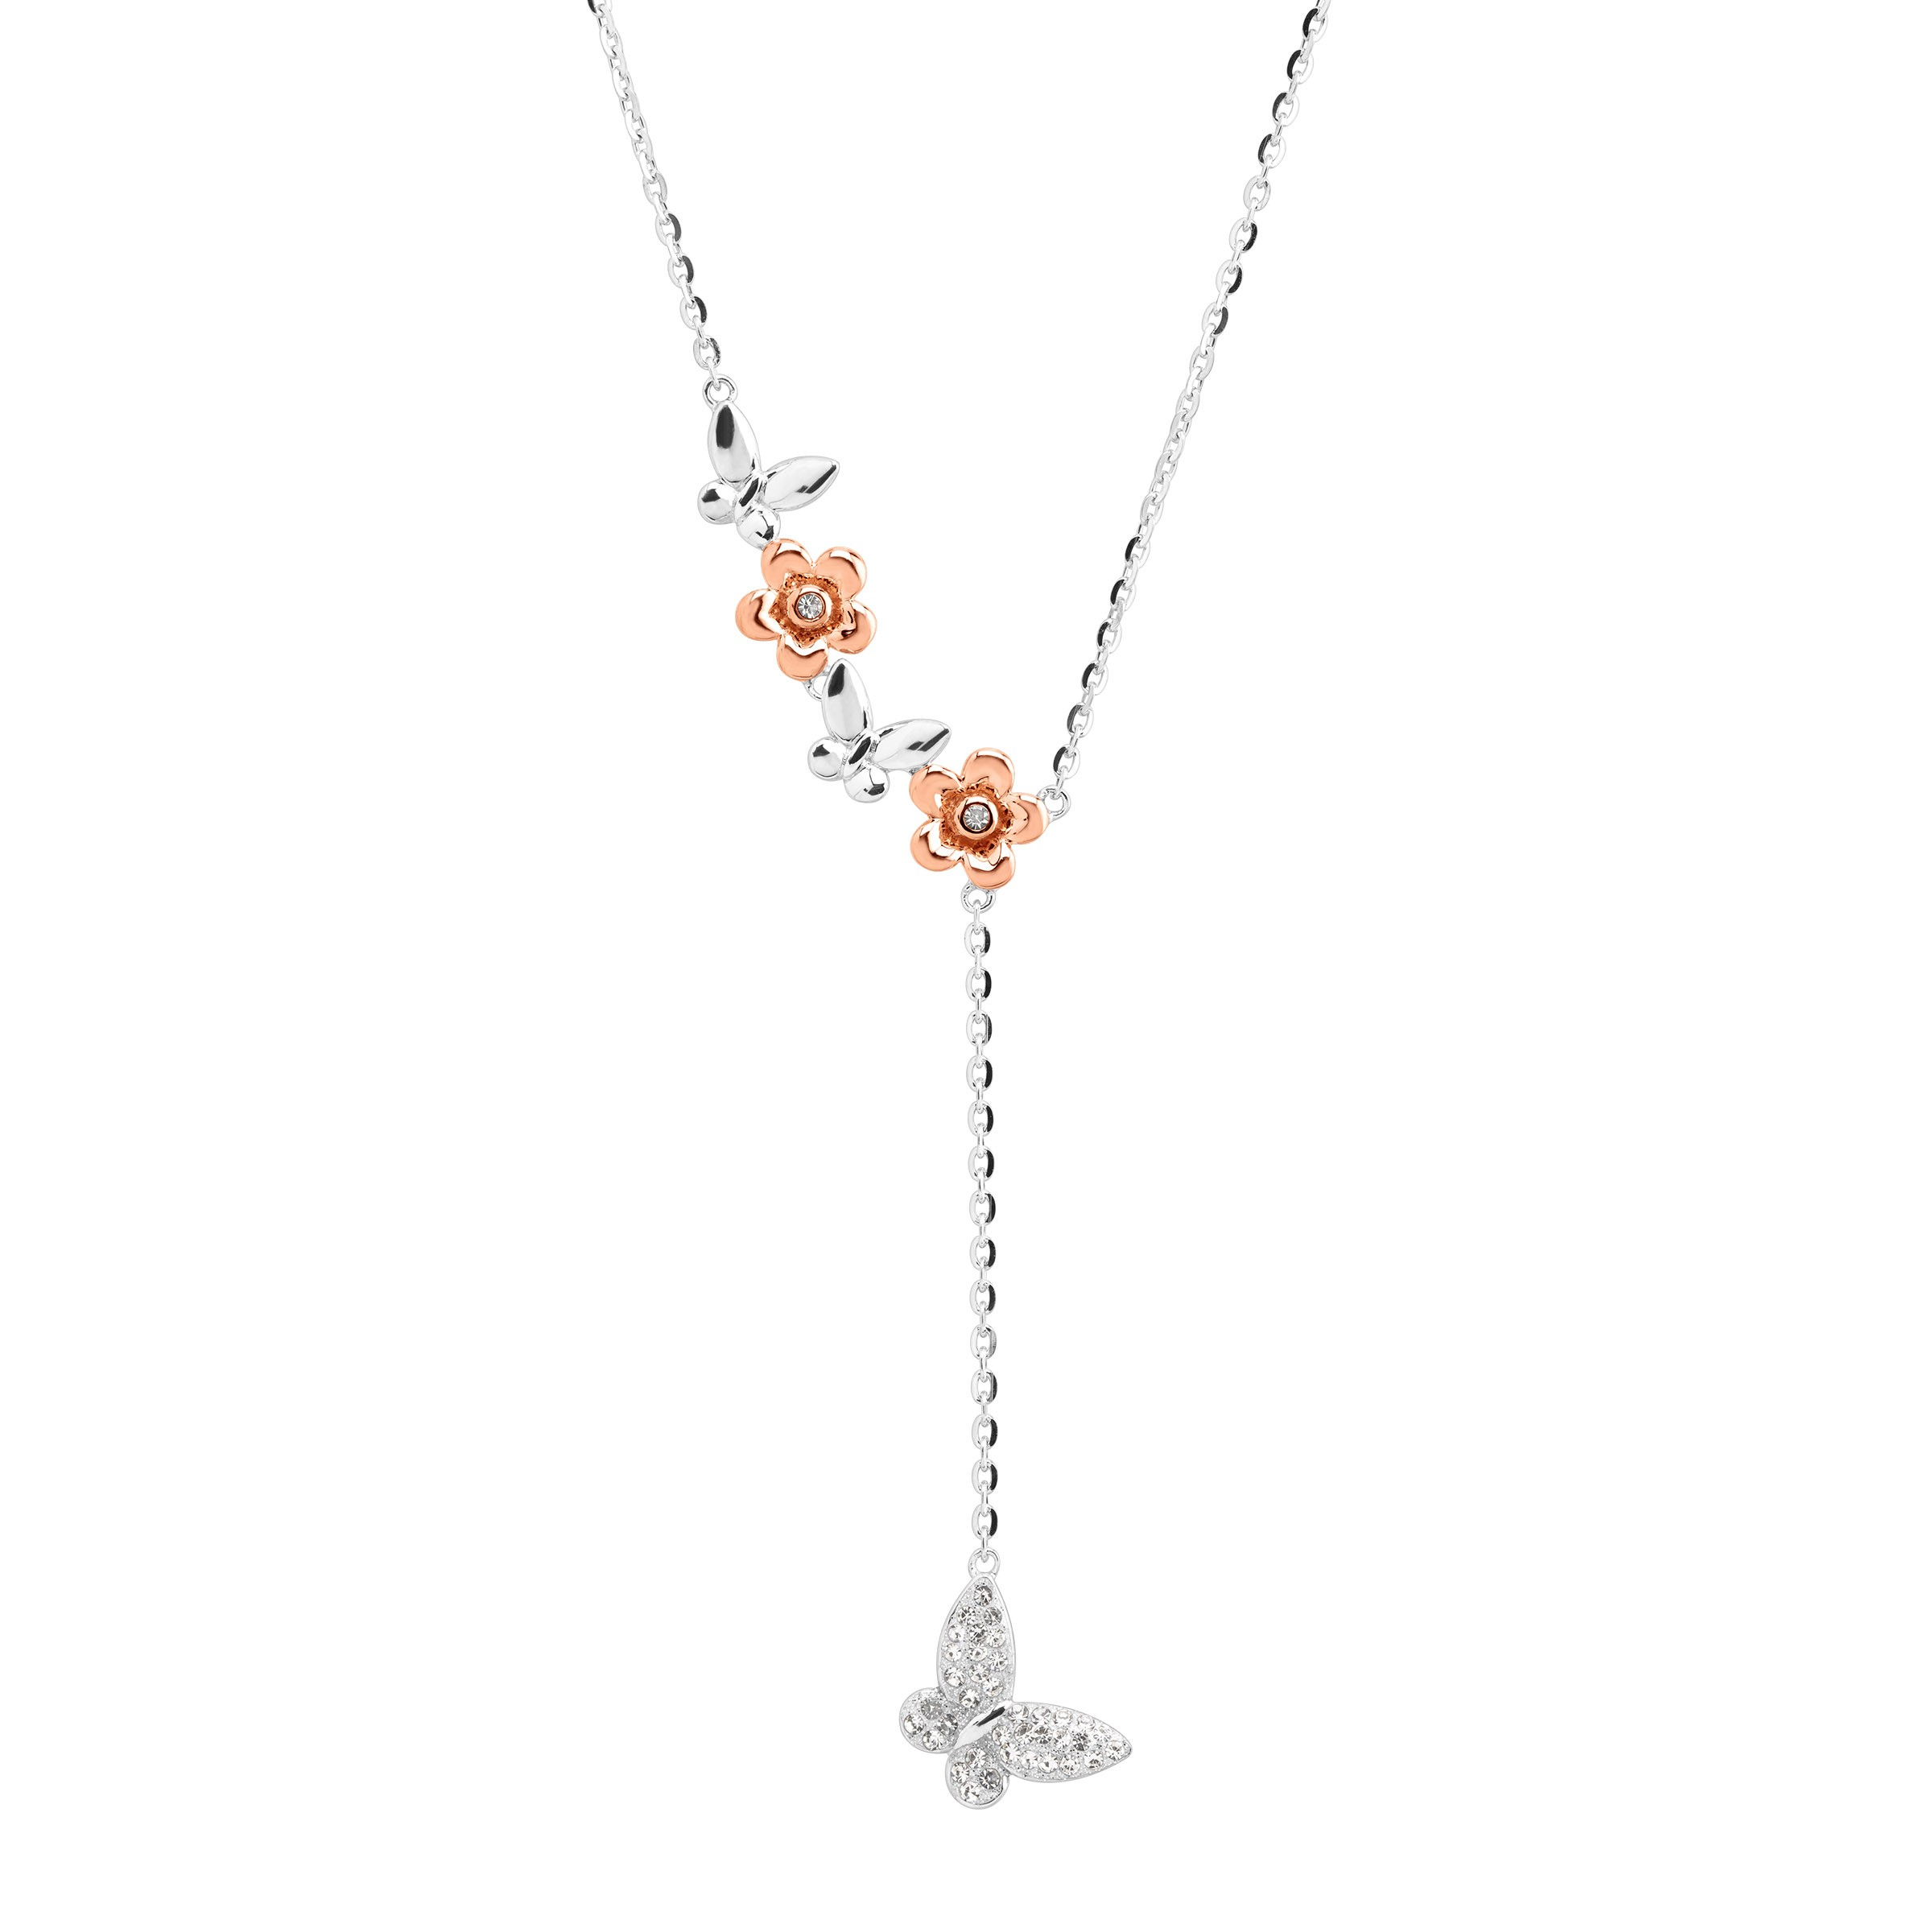 Details About Crystaluxe Two Tone Butterfly Lariat Necklace With Swarovski  Crystals In Silver With Regard To Newest Sparkling Butterfly Y  Necklaces (Gallery 8 of 25)